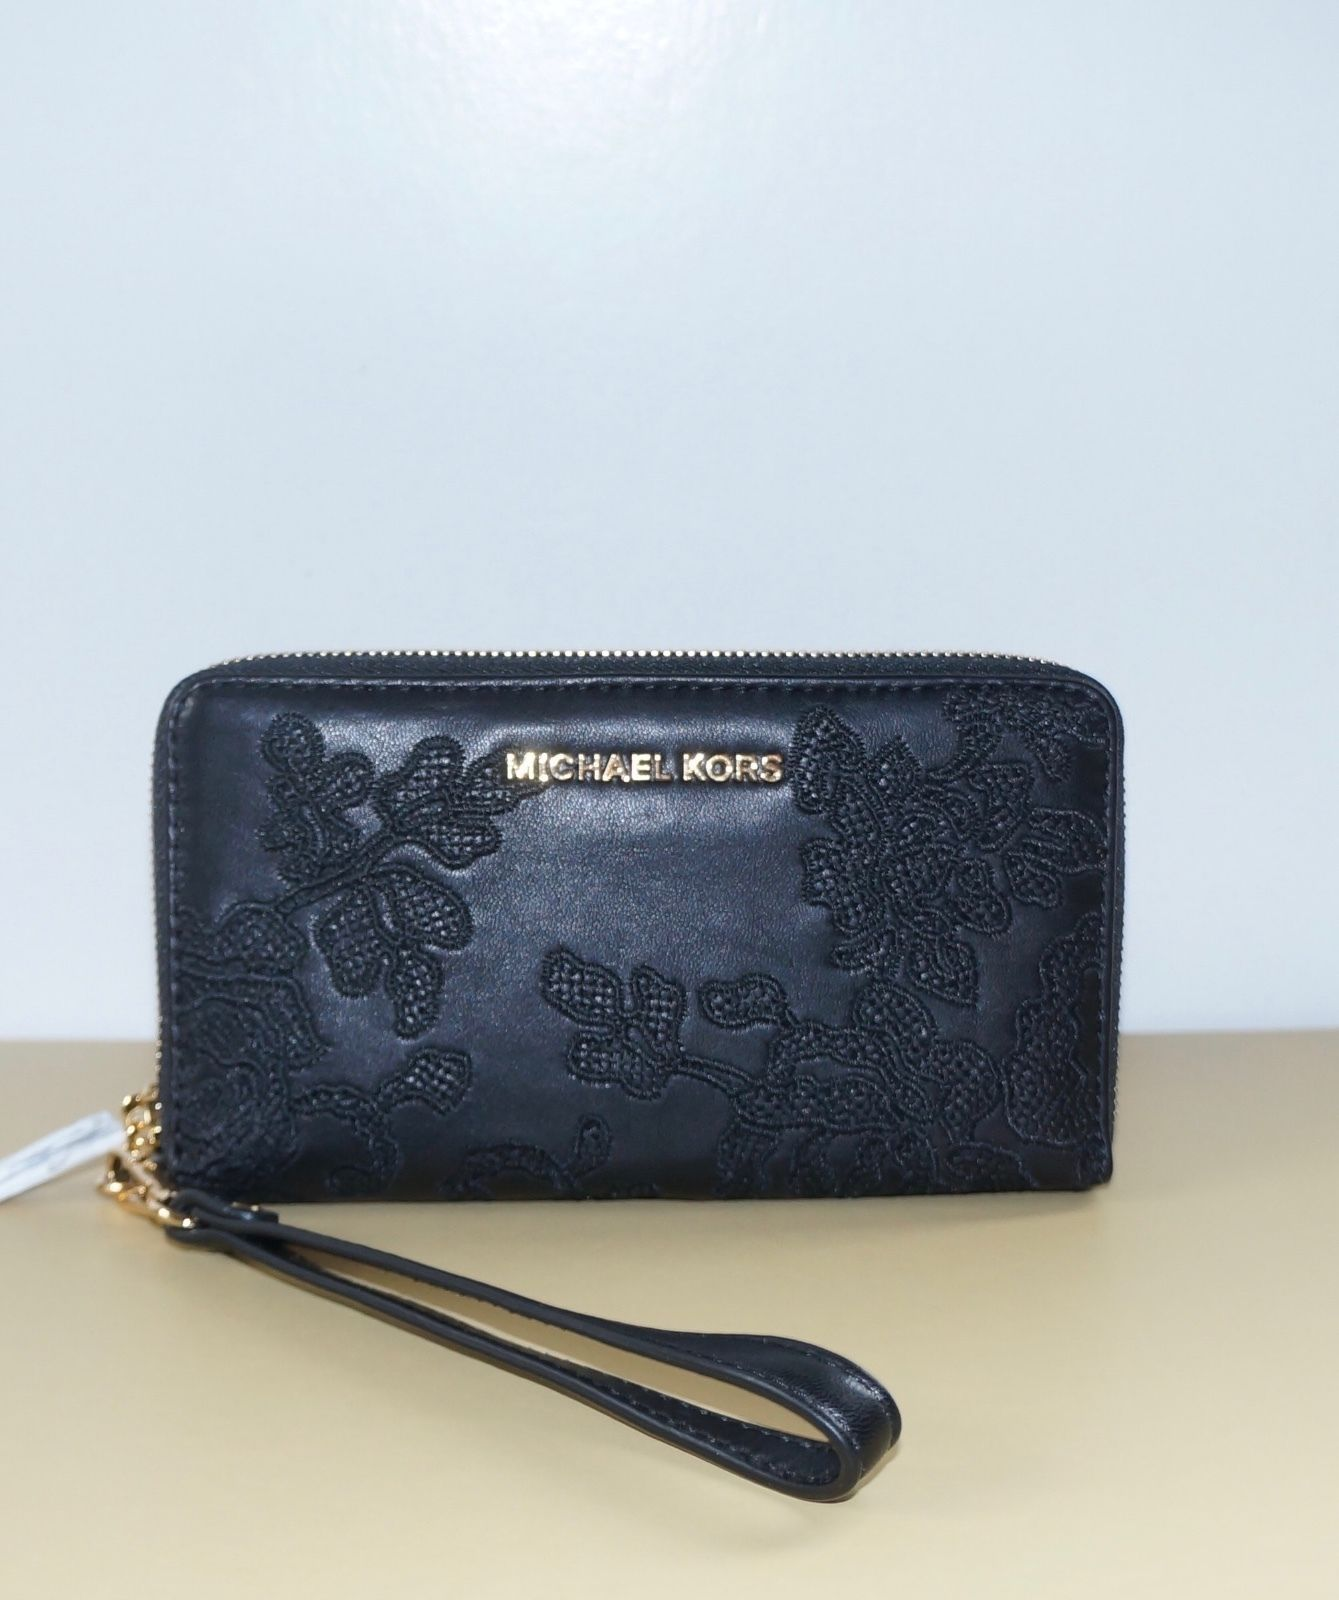 9a9240617189 S l1600. S l1600. Previous. NWT MICHAEL KORS LACE JET SET TRAVEL LG FLAT  MULTIFUNCTION PHONE CASE - BLACK